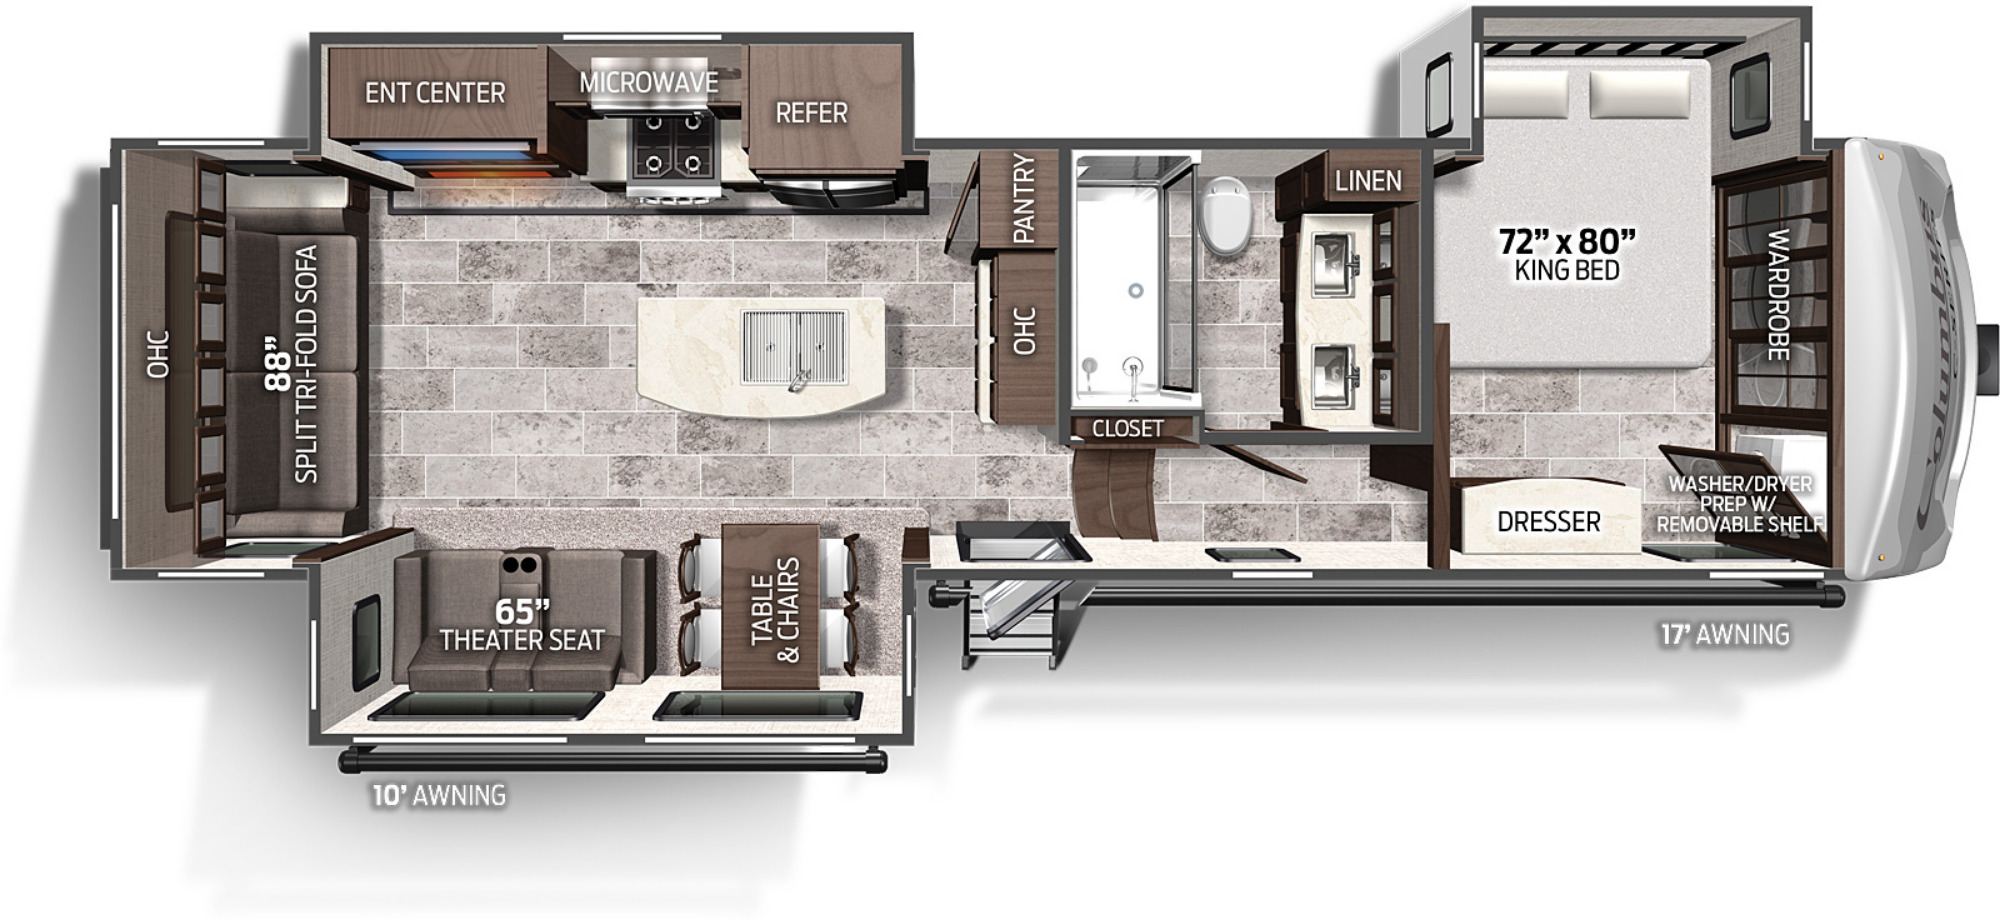 View Floor Plan for 2022 FOREST RIVER COLUMBUS C-SERIES 329DVC